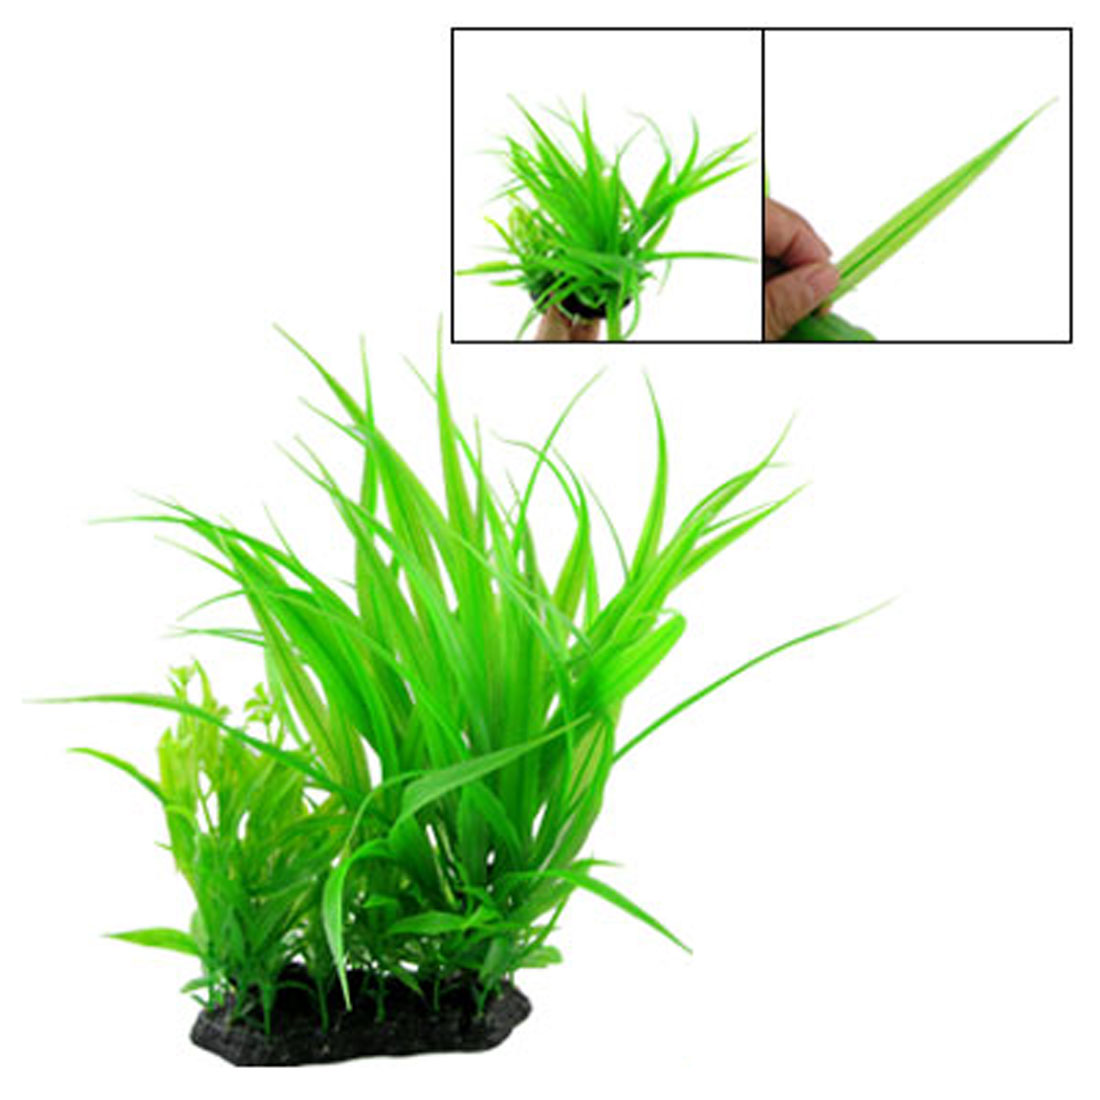 Green Plastic Grass Plants Ornament W Flower for Fish Tank Aquarium